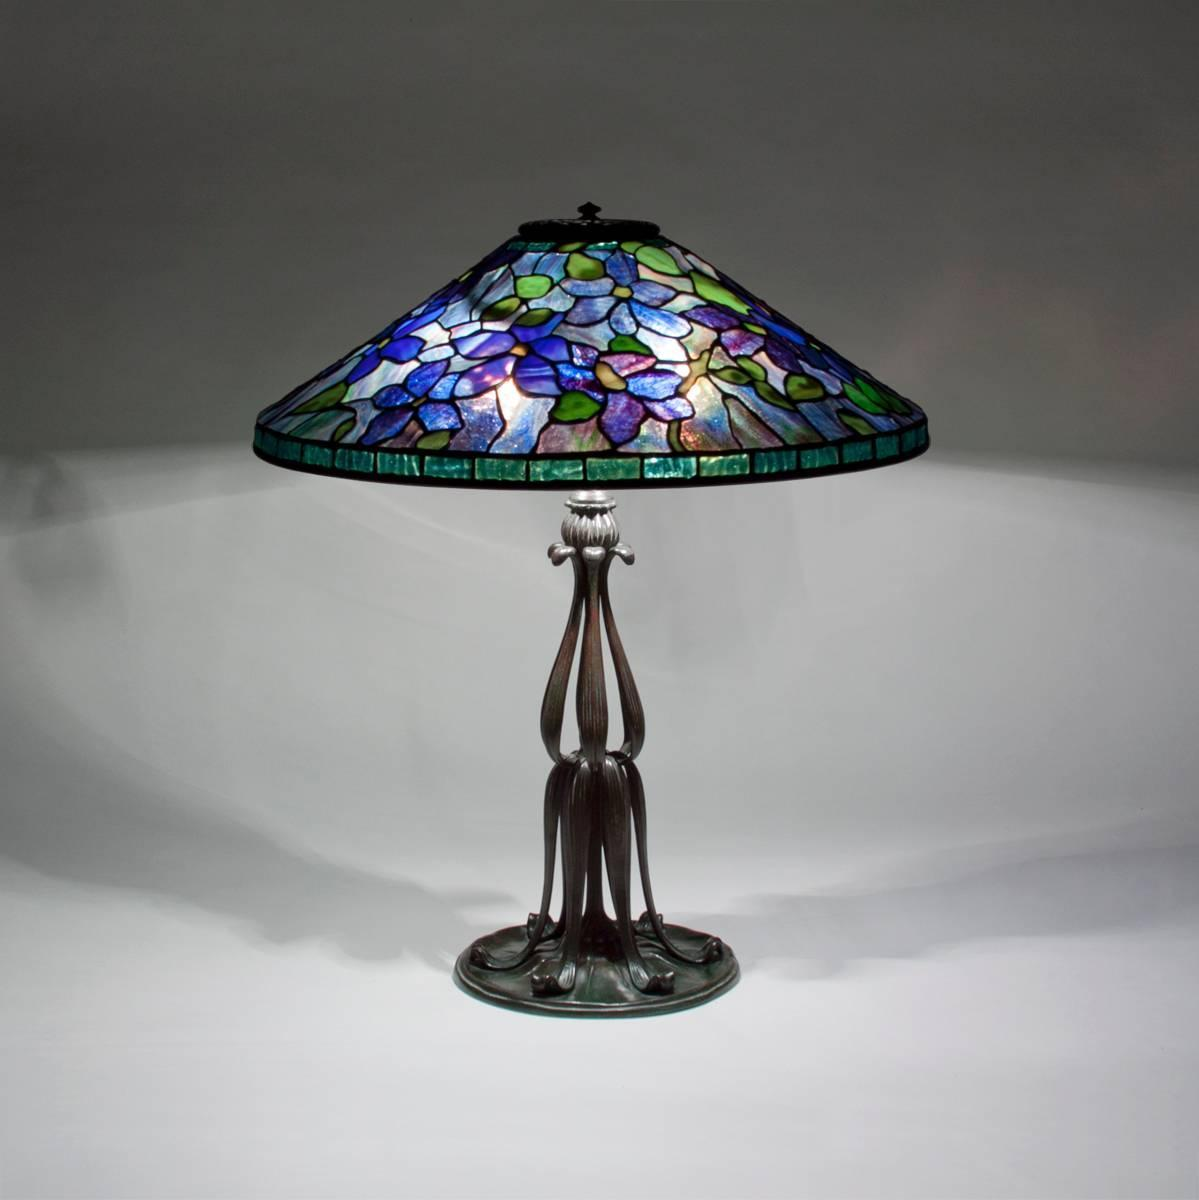 tiffany studios clematis table lamp for sale at 1stdibs. Black Bedroom Furniture Sets. Home Design Ideas